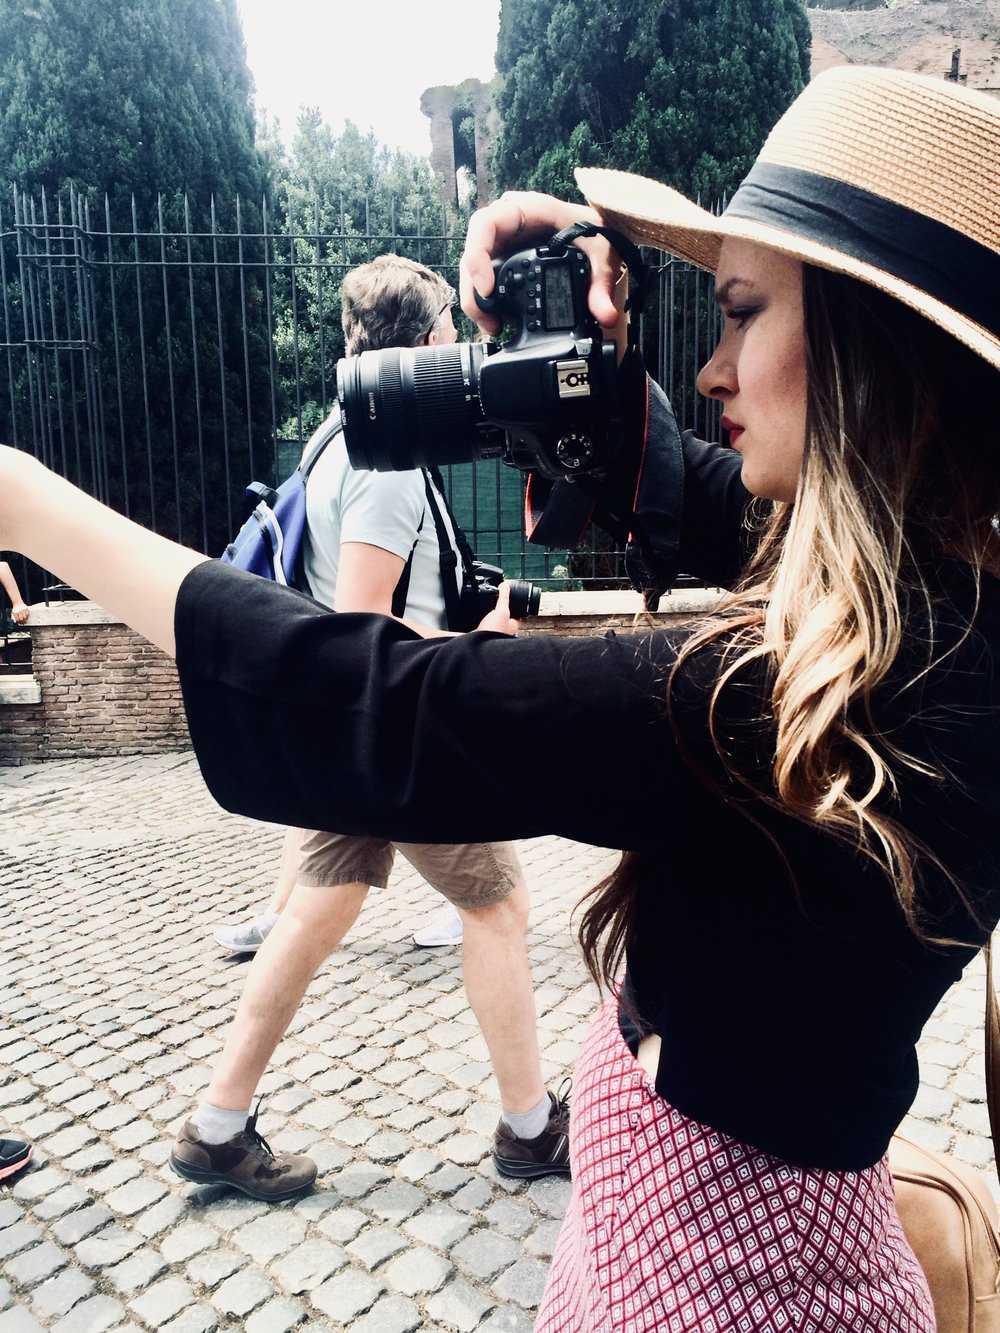 Me taking photos on one of my travels to Italia